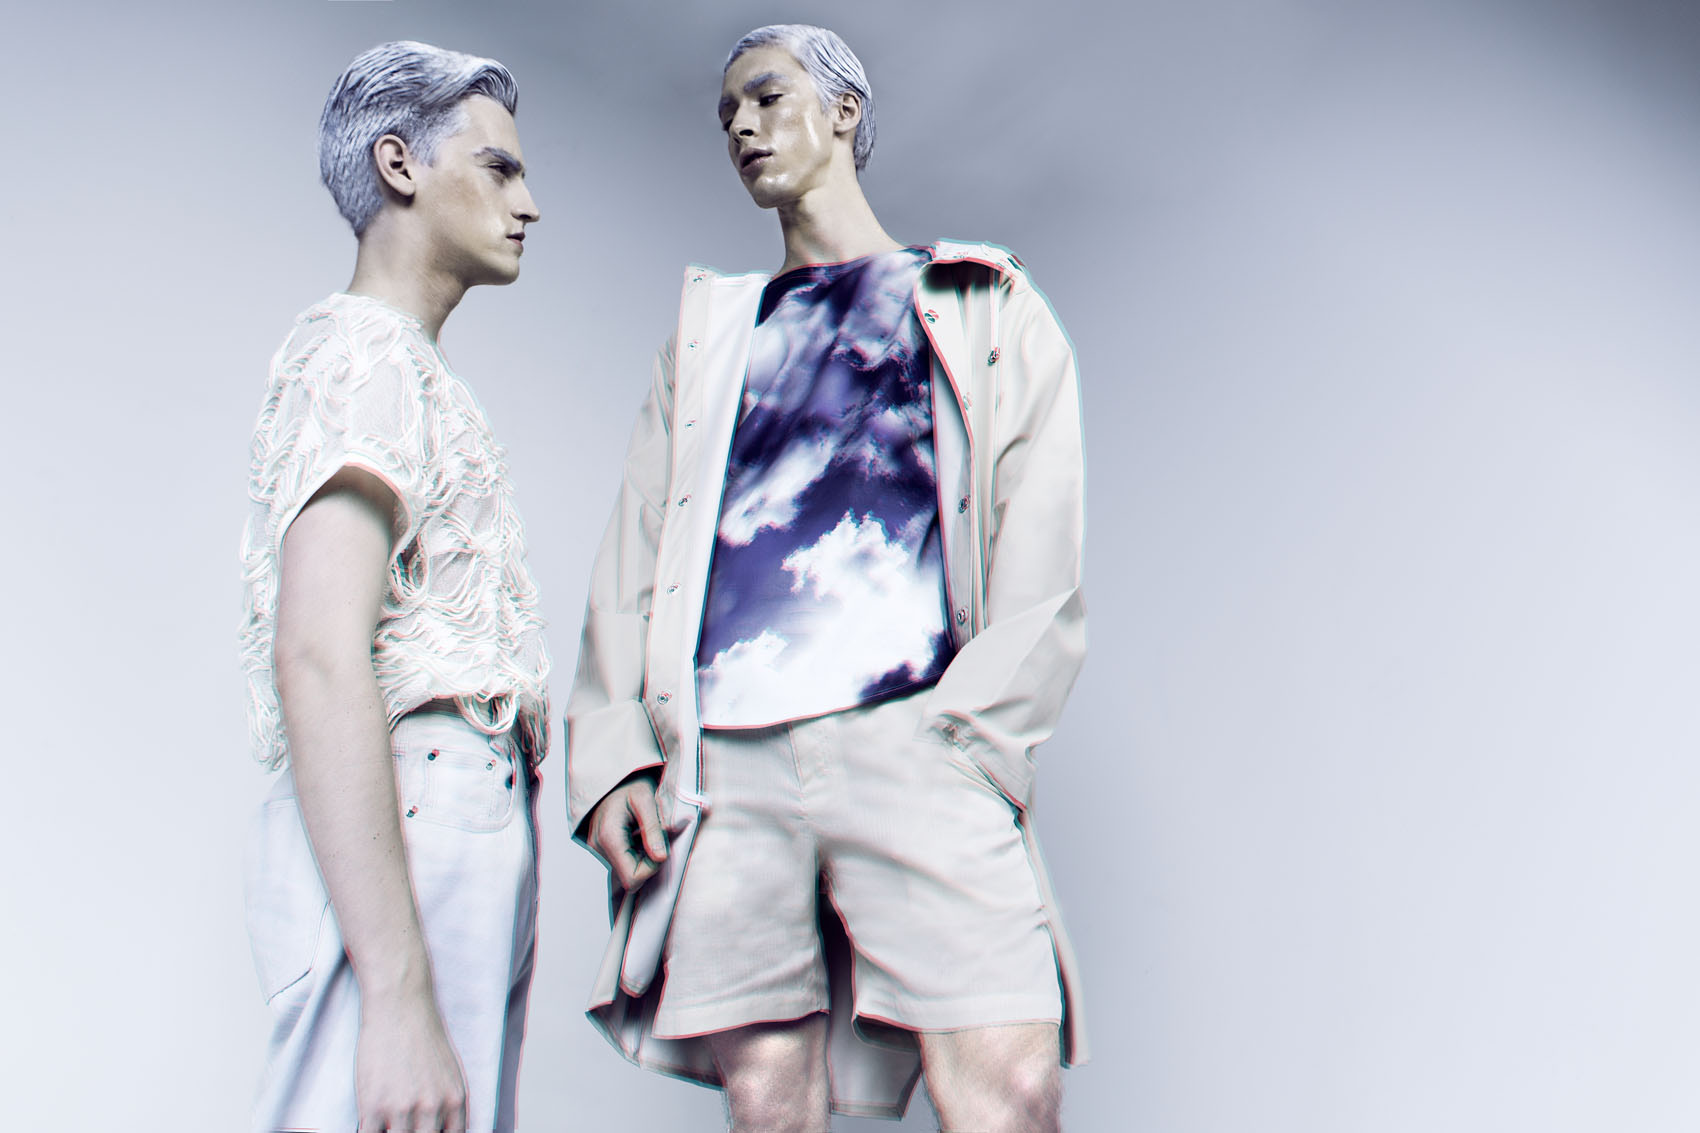 Exploited by David Quin for CHASSEUR MAGAZINE